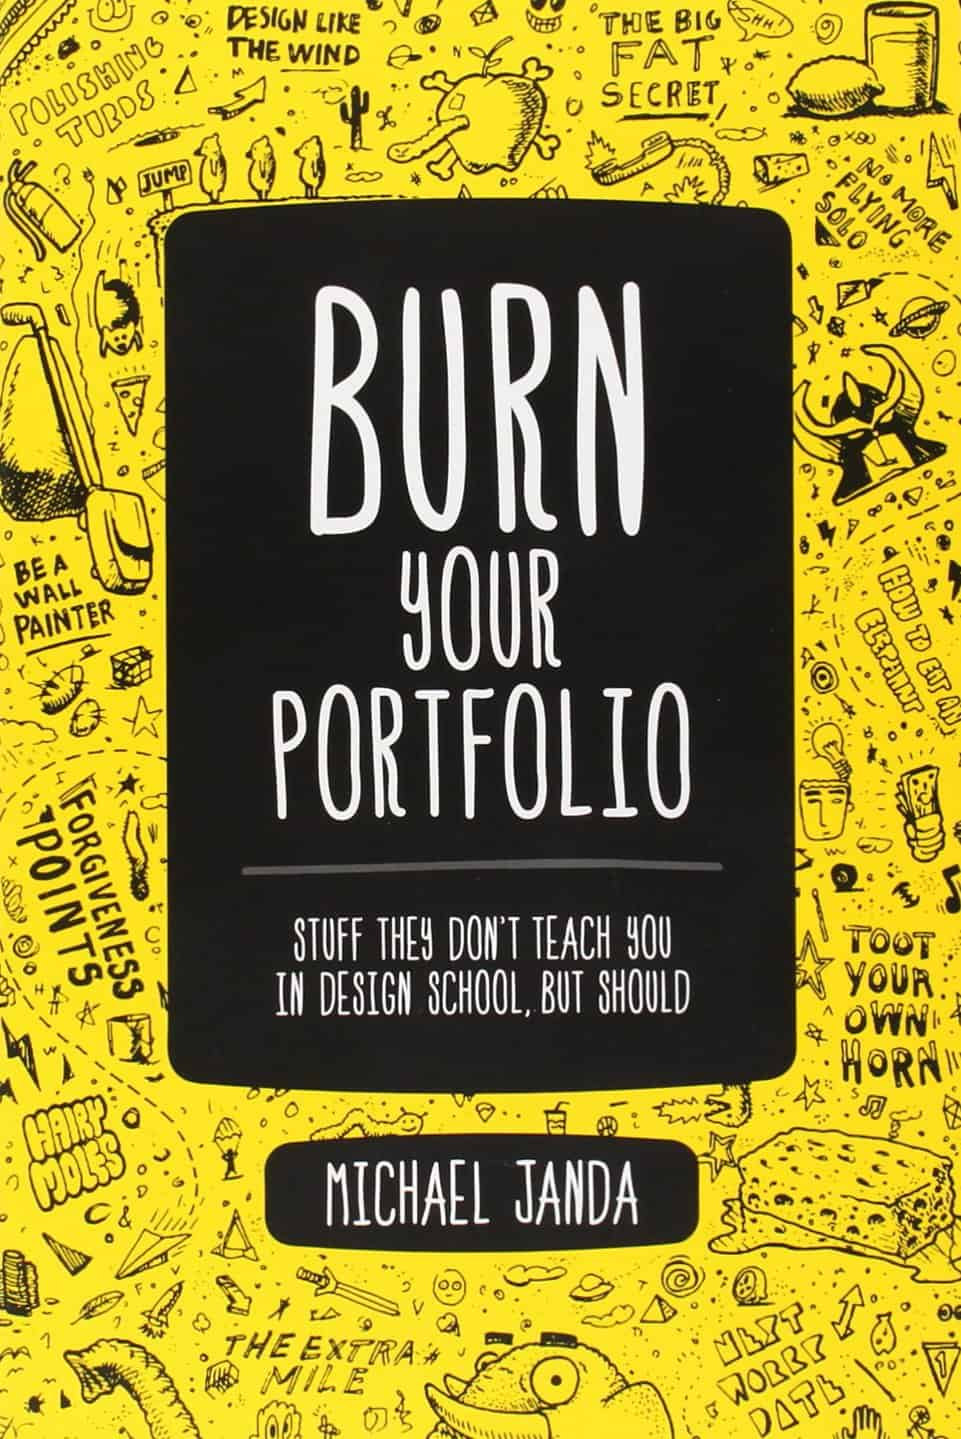 11 Design Books that Will Take You to Ninja Level in 2015